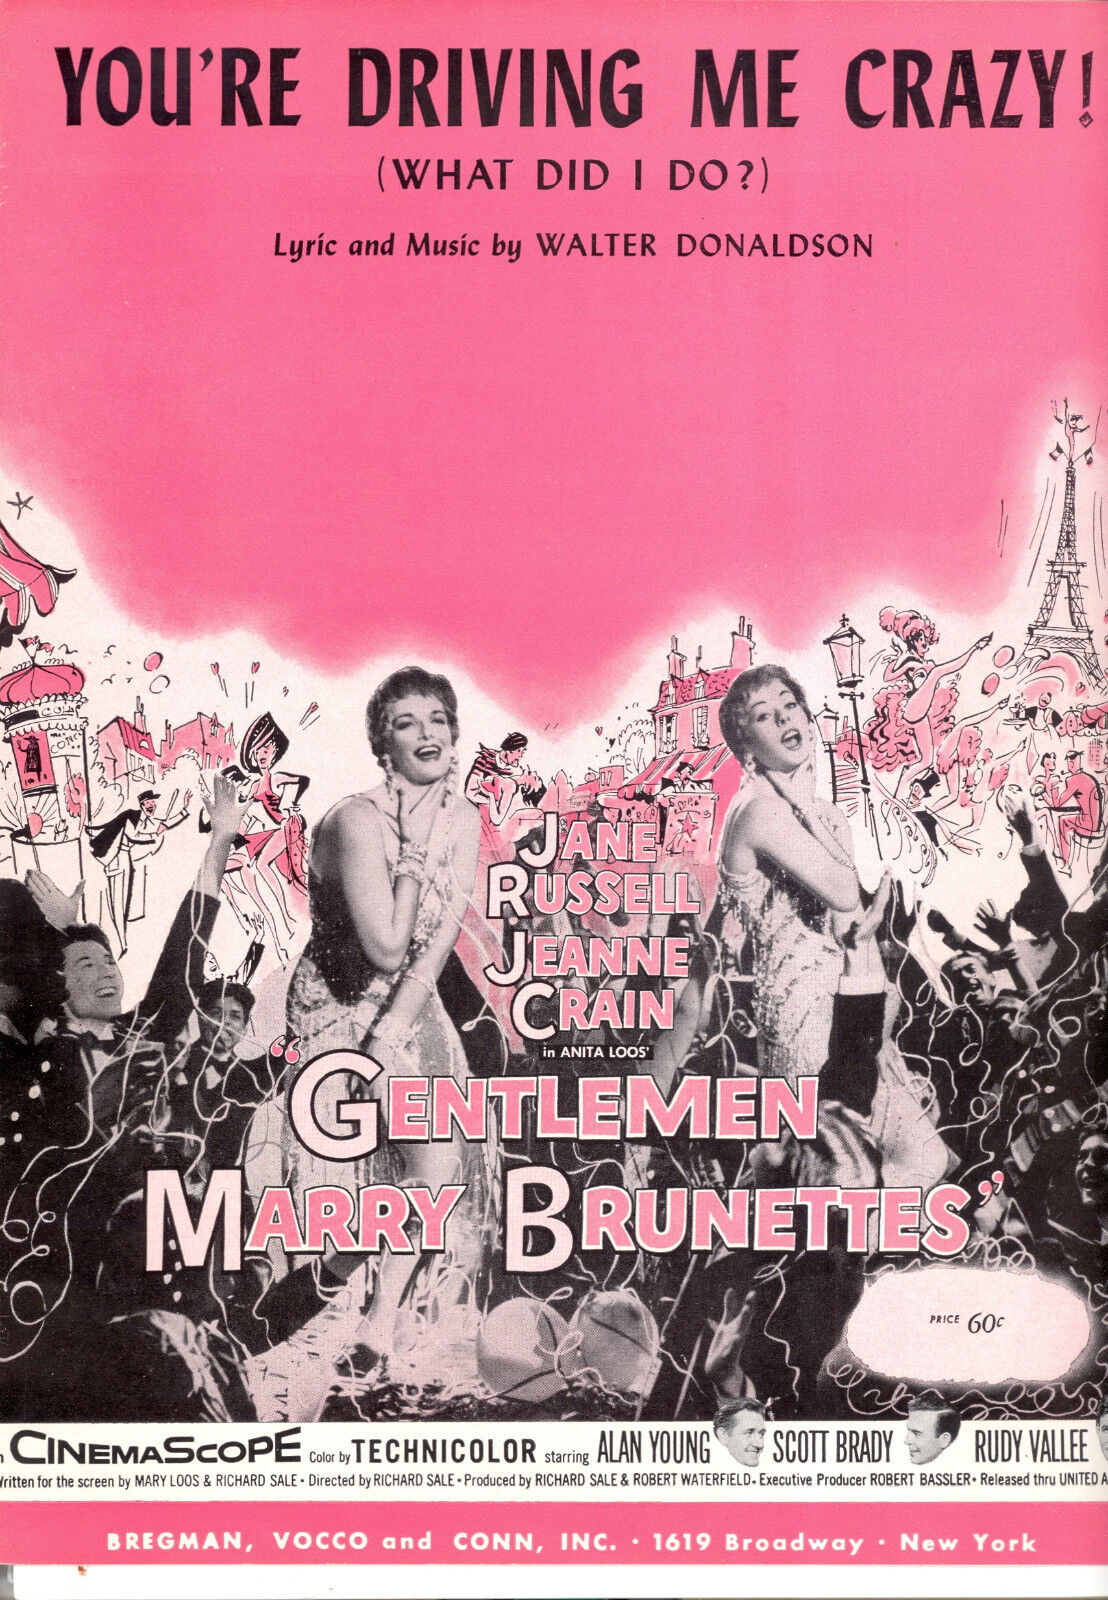 Gentlemen Marry Brunettes   You'Re Driving Me Crazy   Jane Russell Jeanne